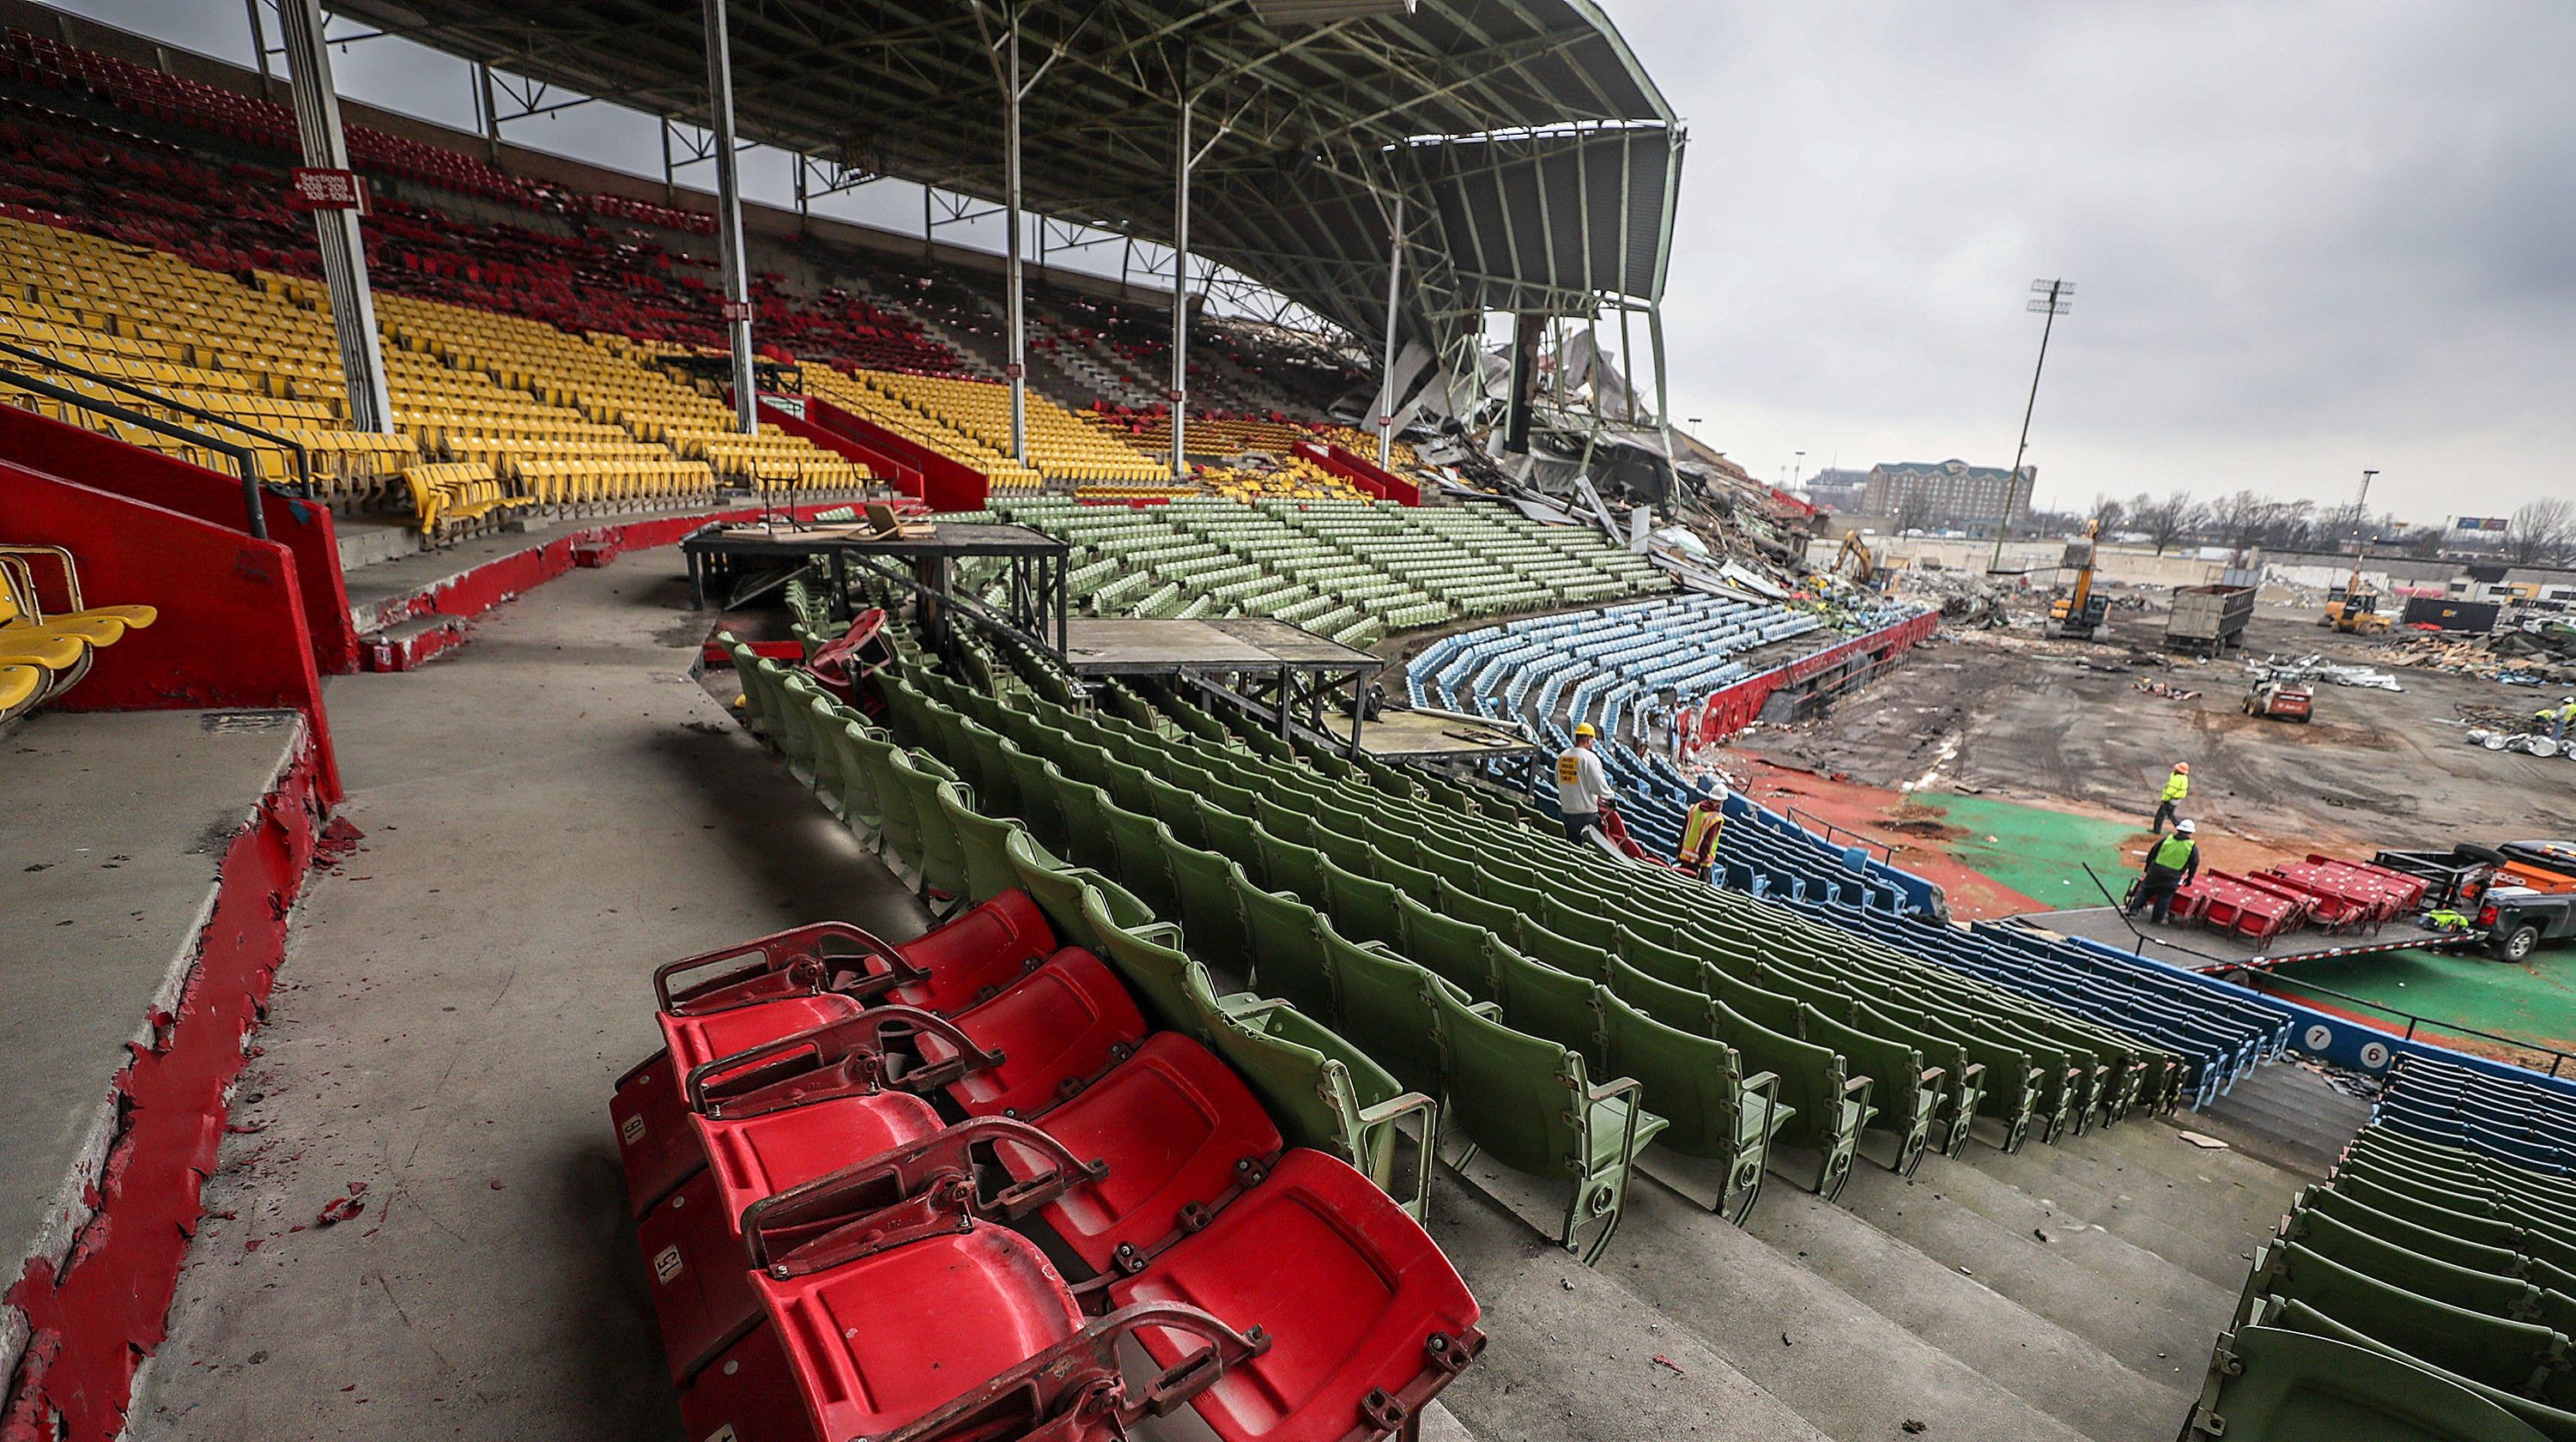 Old Cardinal Stadium in Louisville is finally coming down